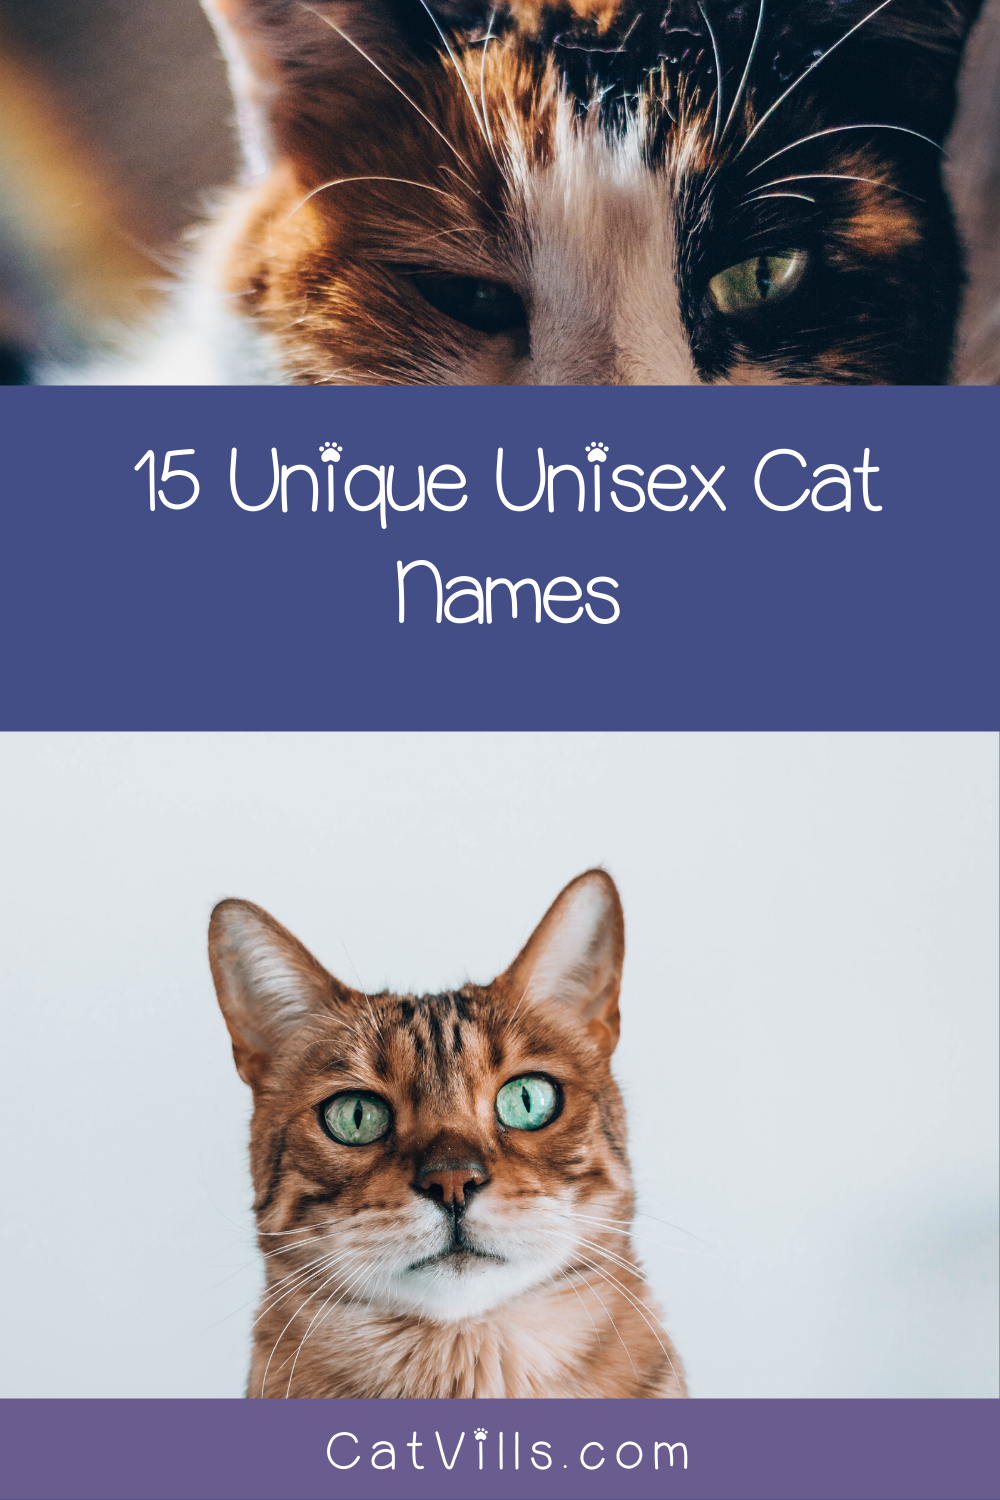 400+ Cat Names Ideas for Male and Female Cats Cat names